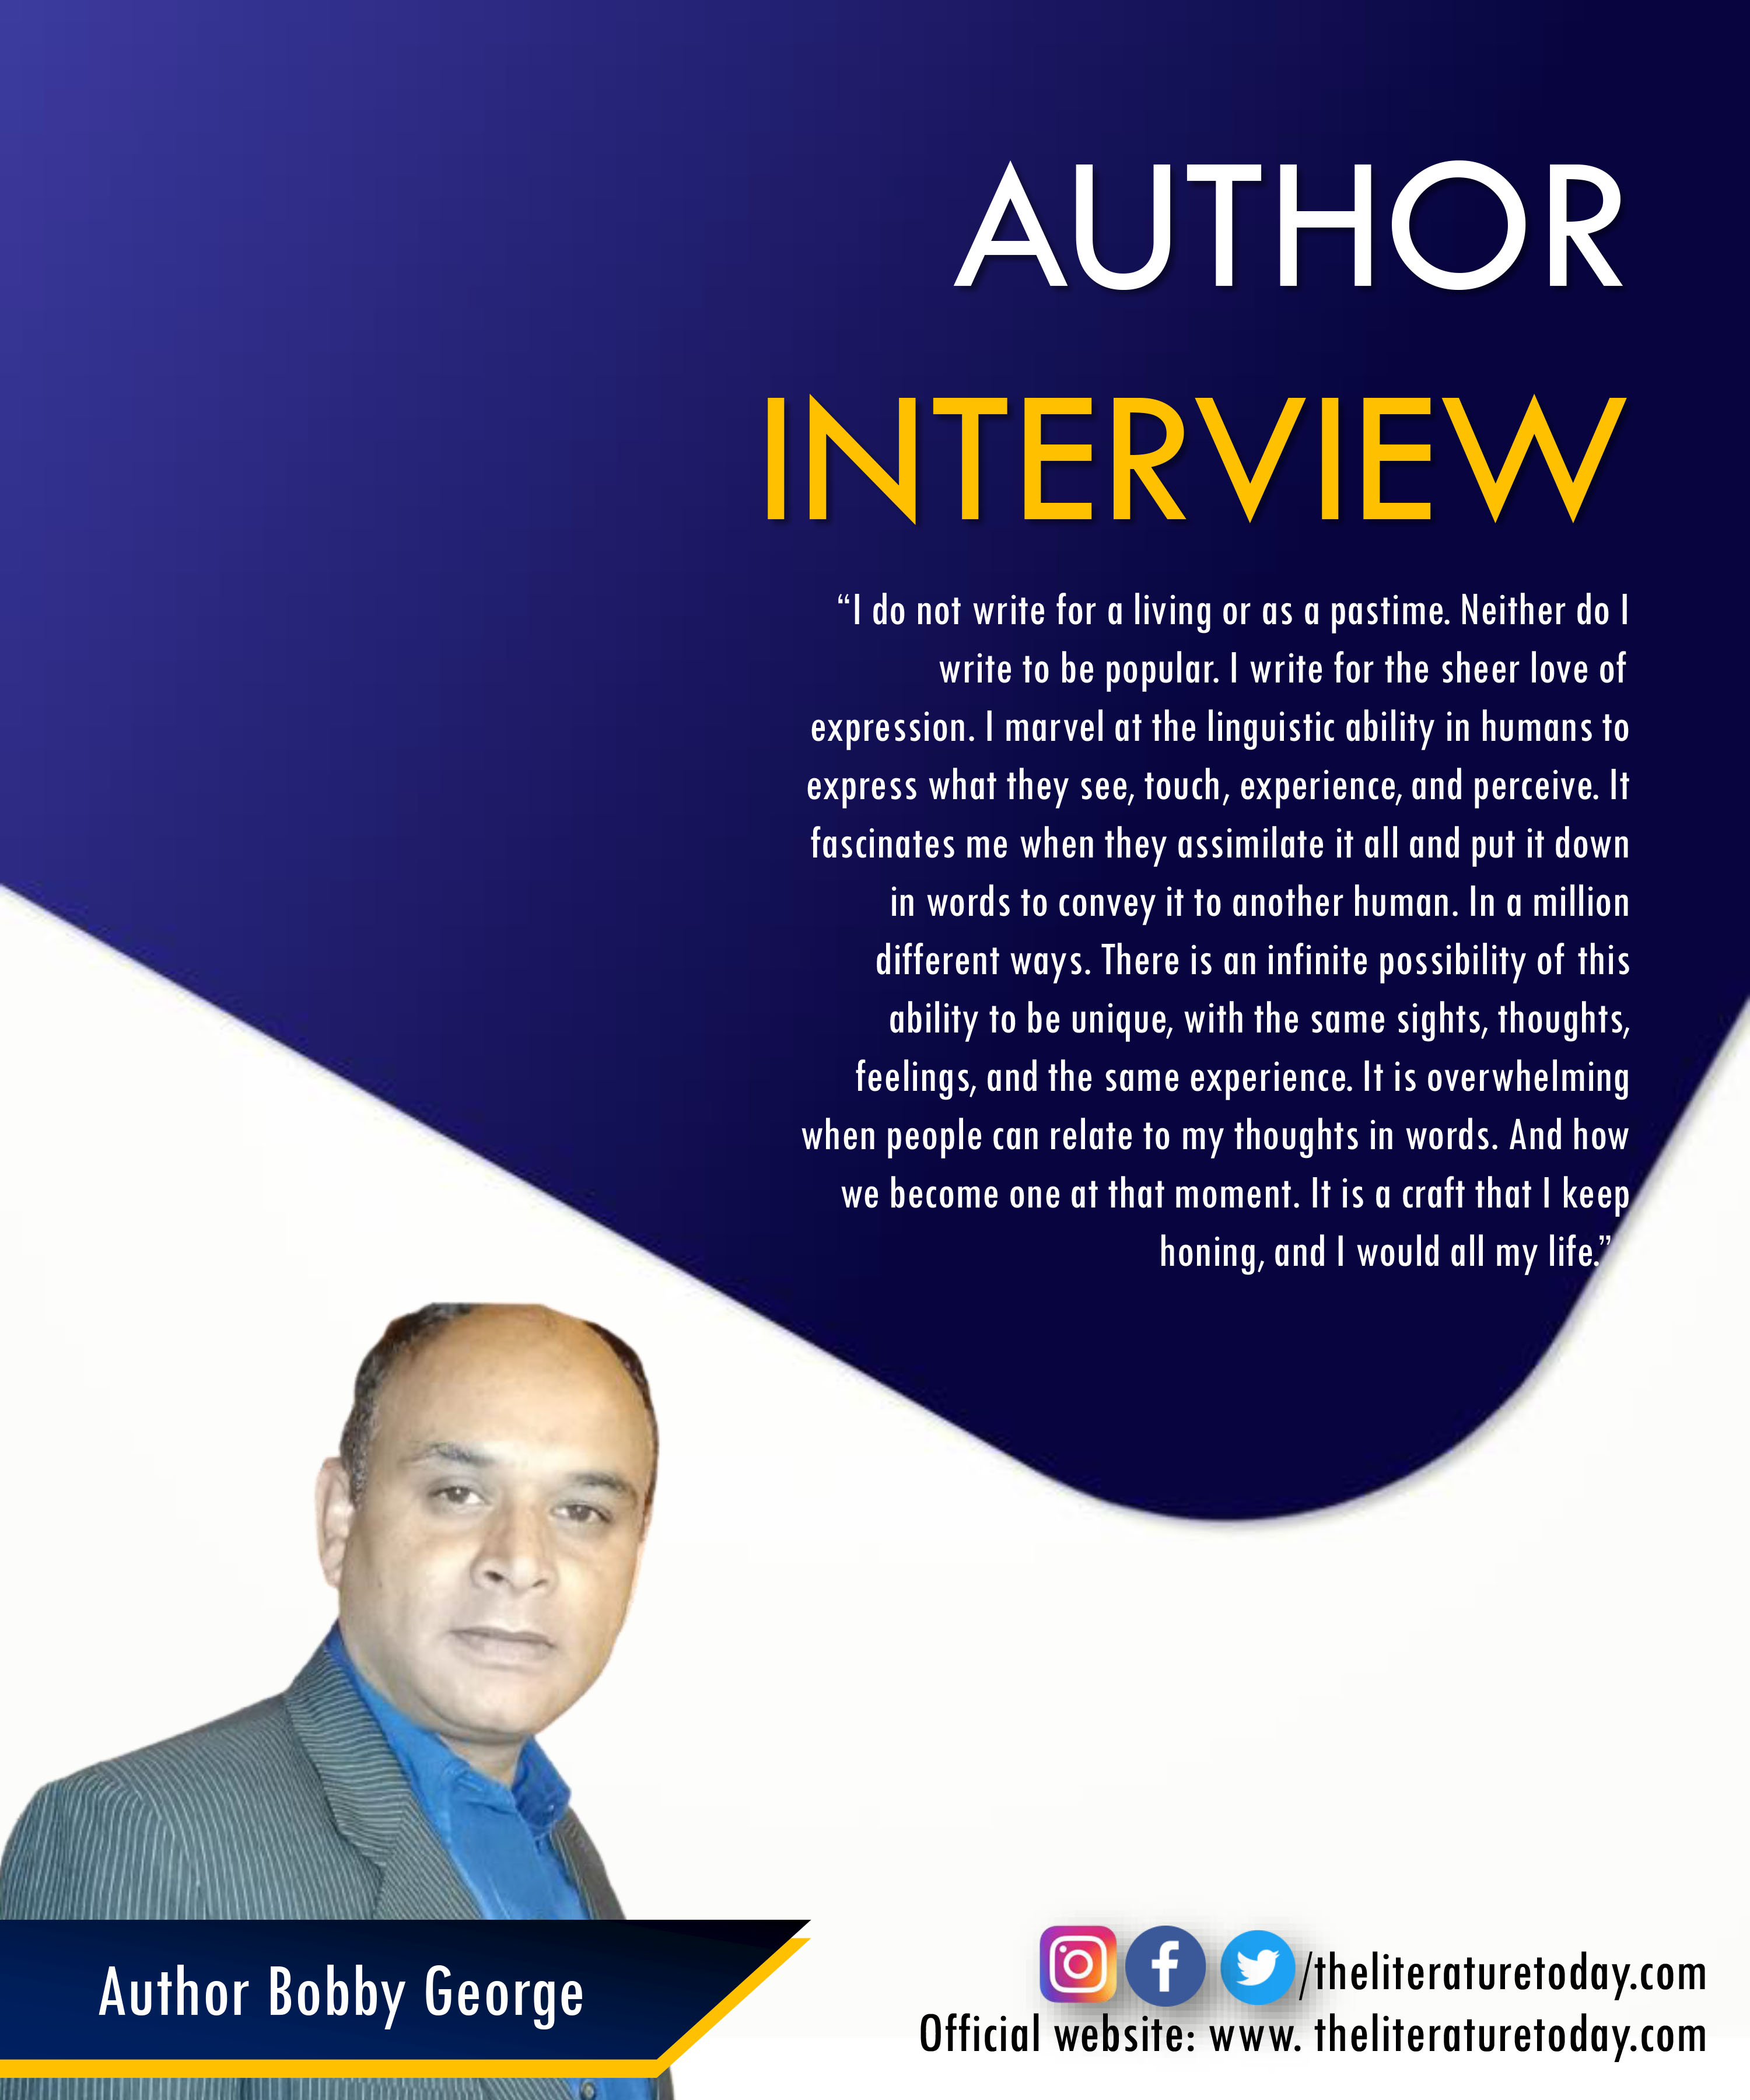 Interview with Author Bobby Geroge |The Literature Today